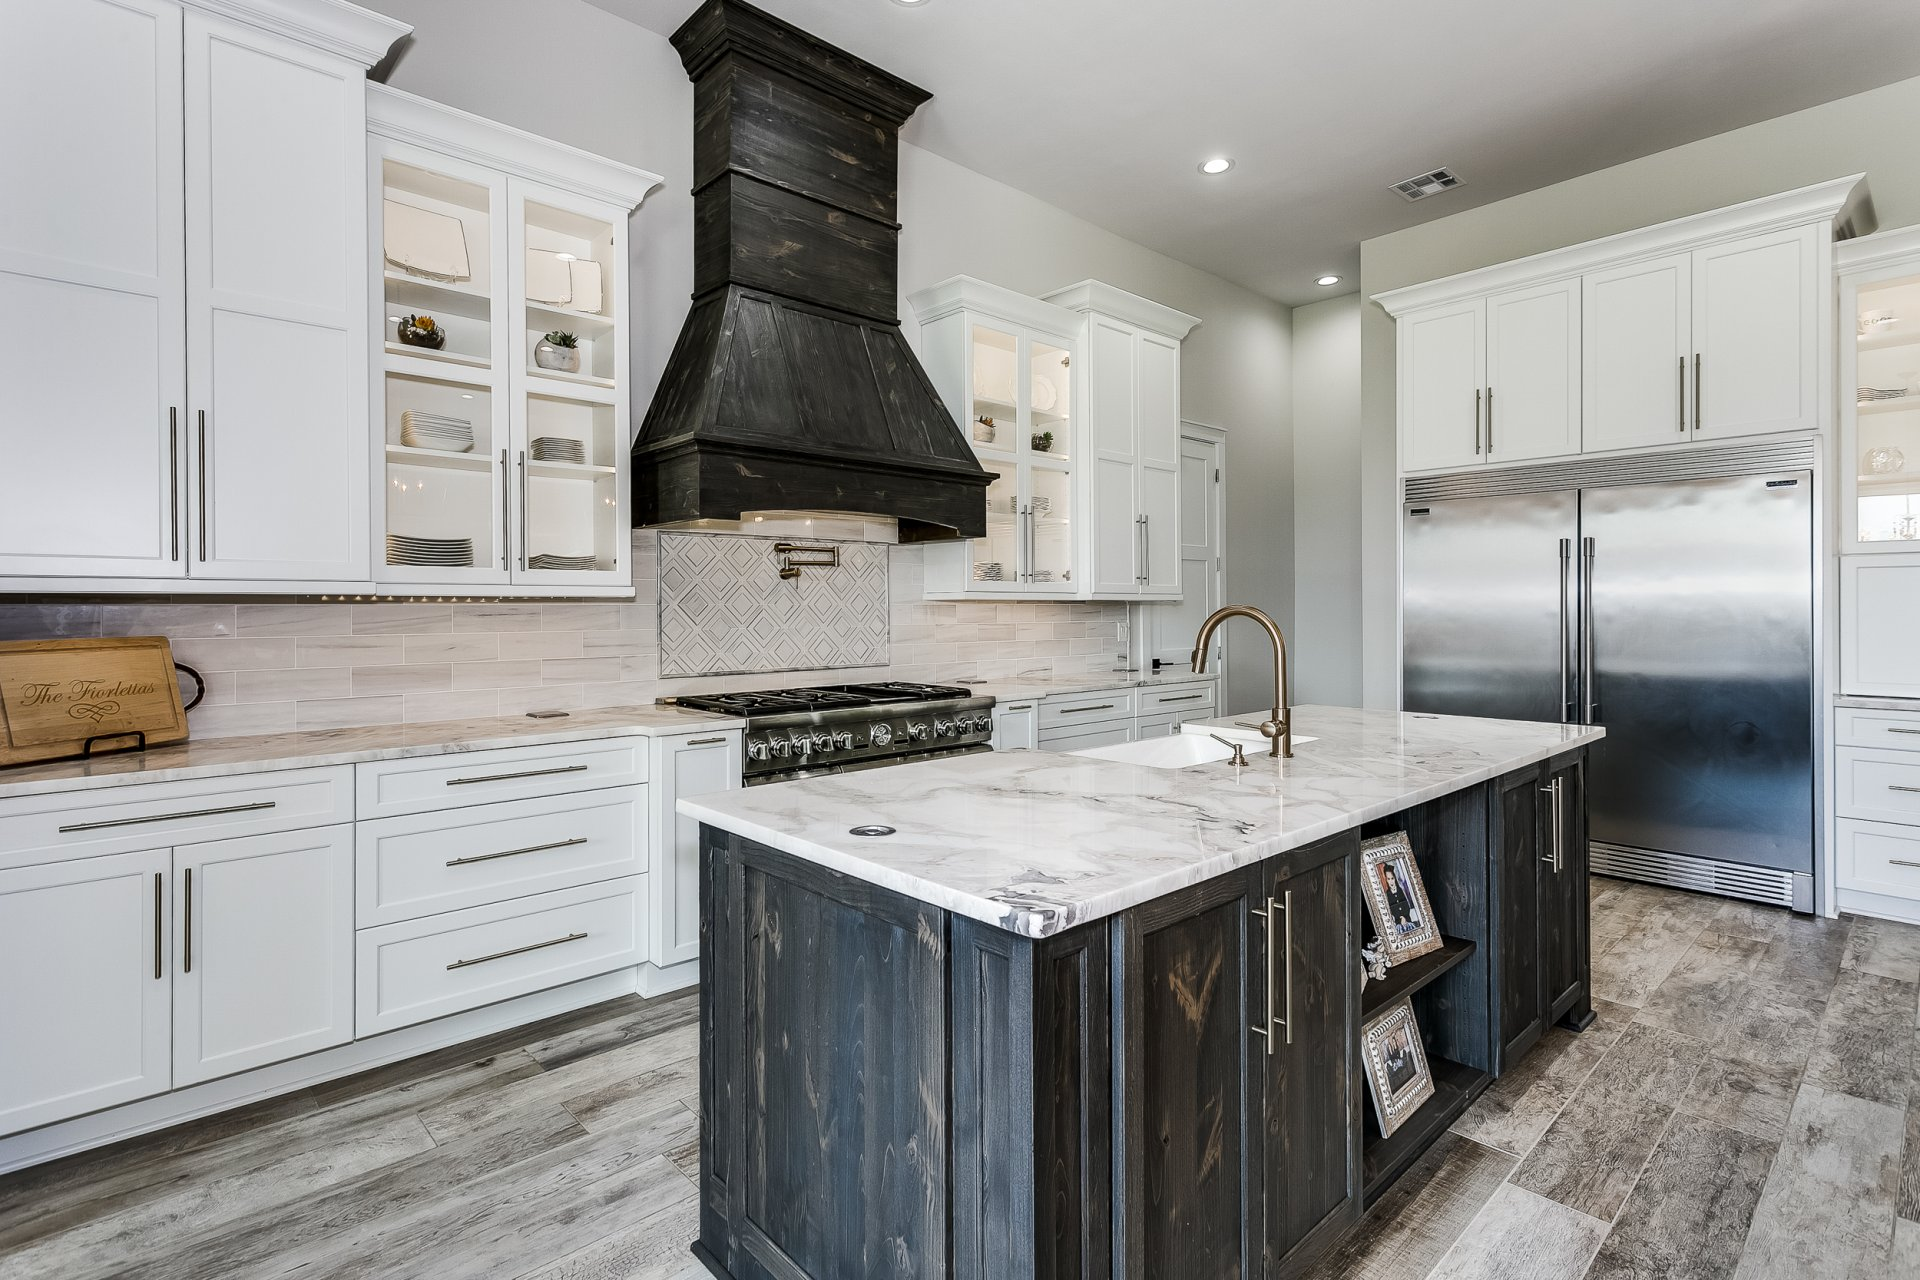 Tons of storage and features in a custom kitchen